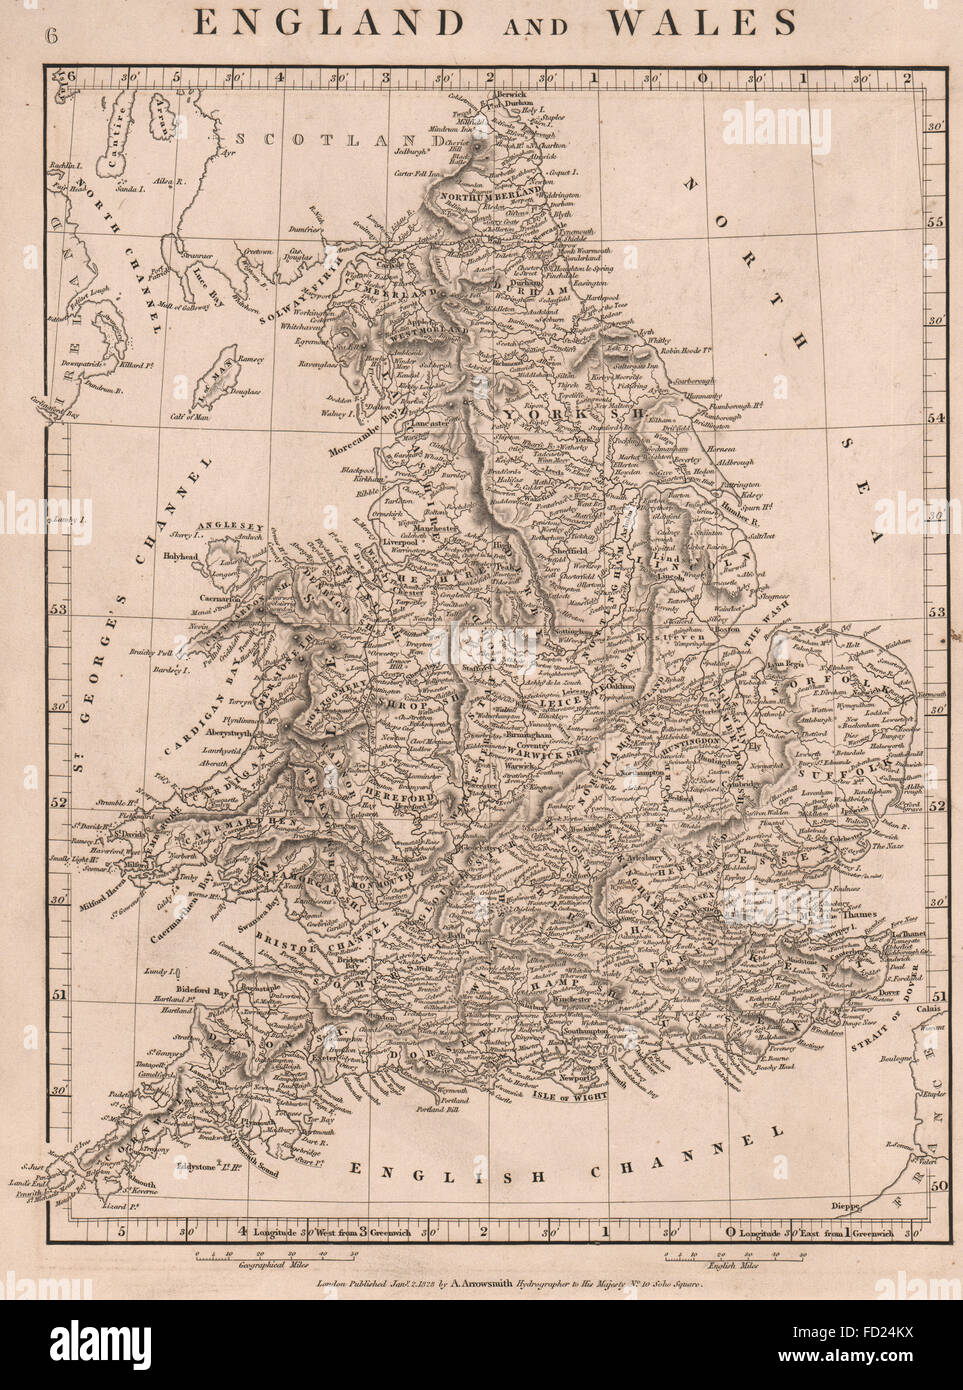 Map Of England Counties And Towns.England And Wales Counties Towns Arrowsmith 1828 Antique Map